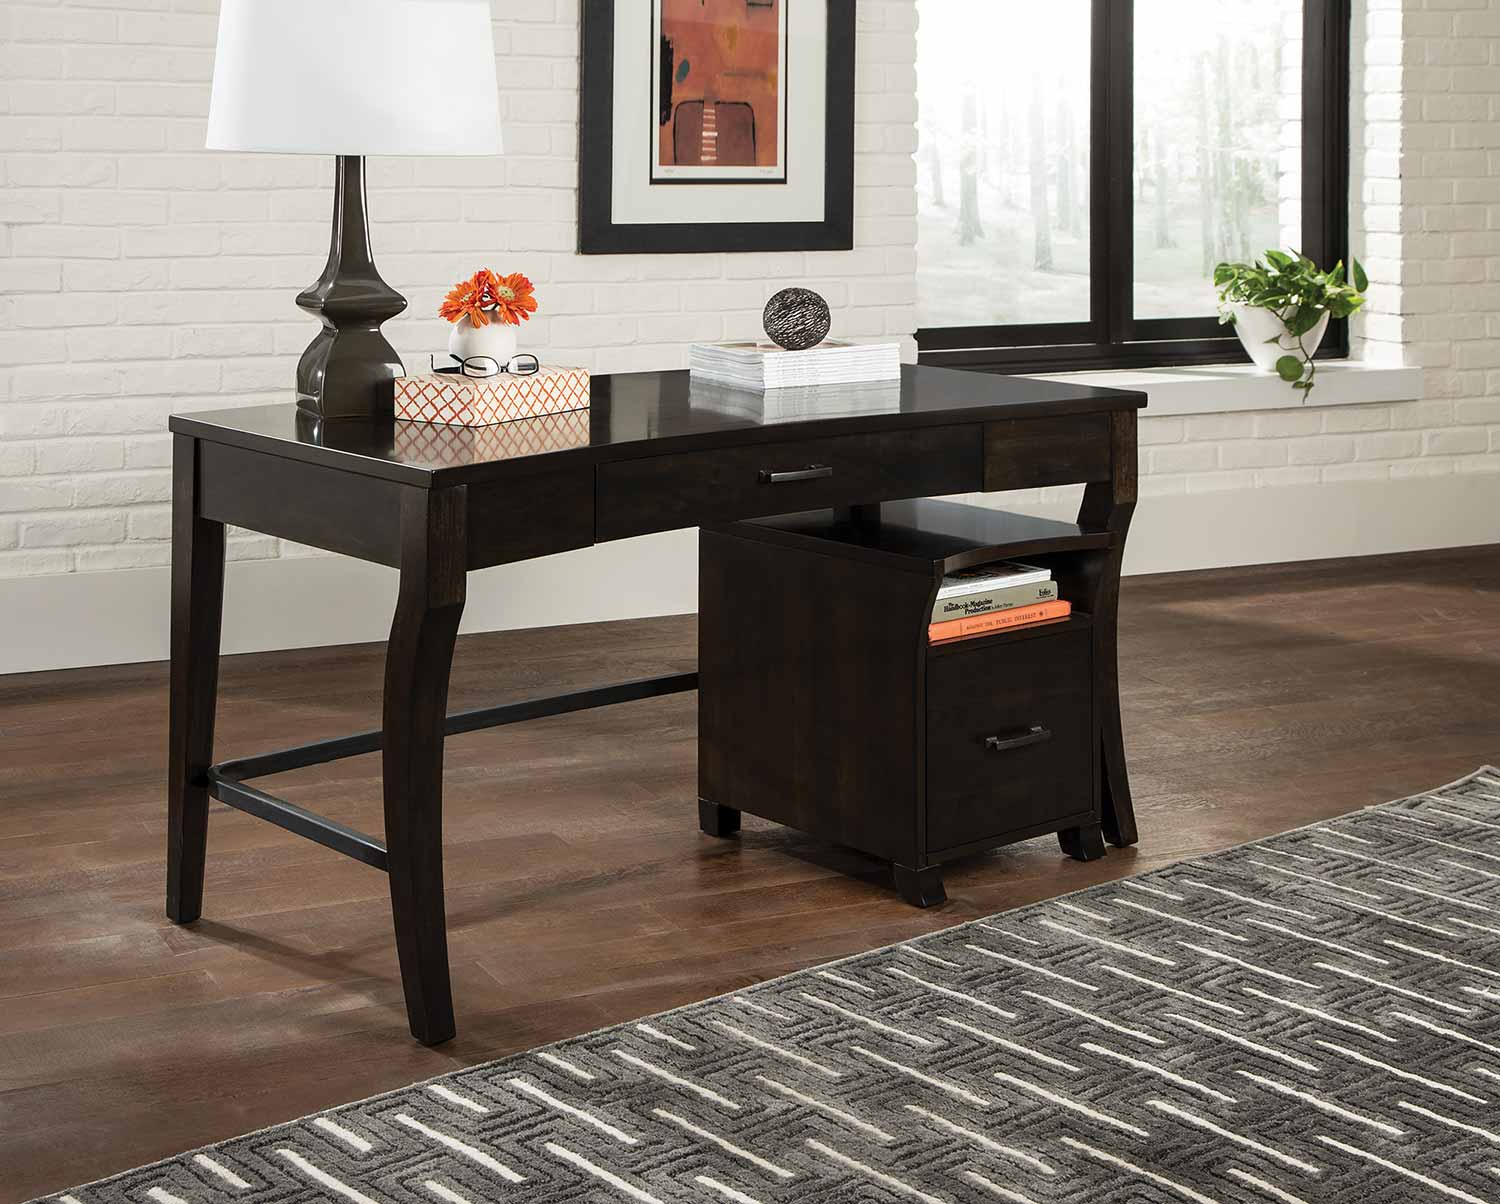 Coaster 801751 Desk Set - Smoke Black